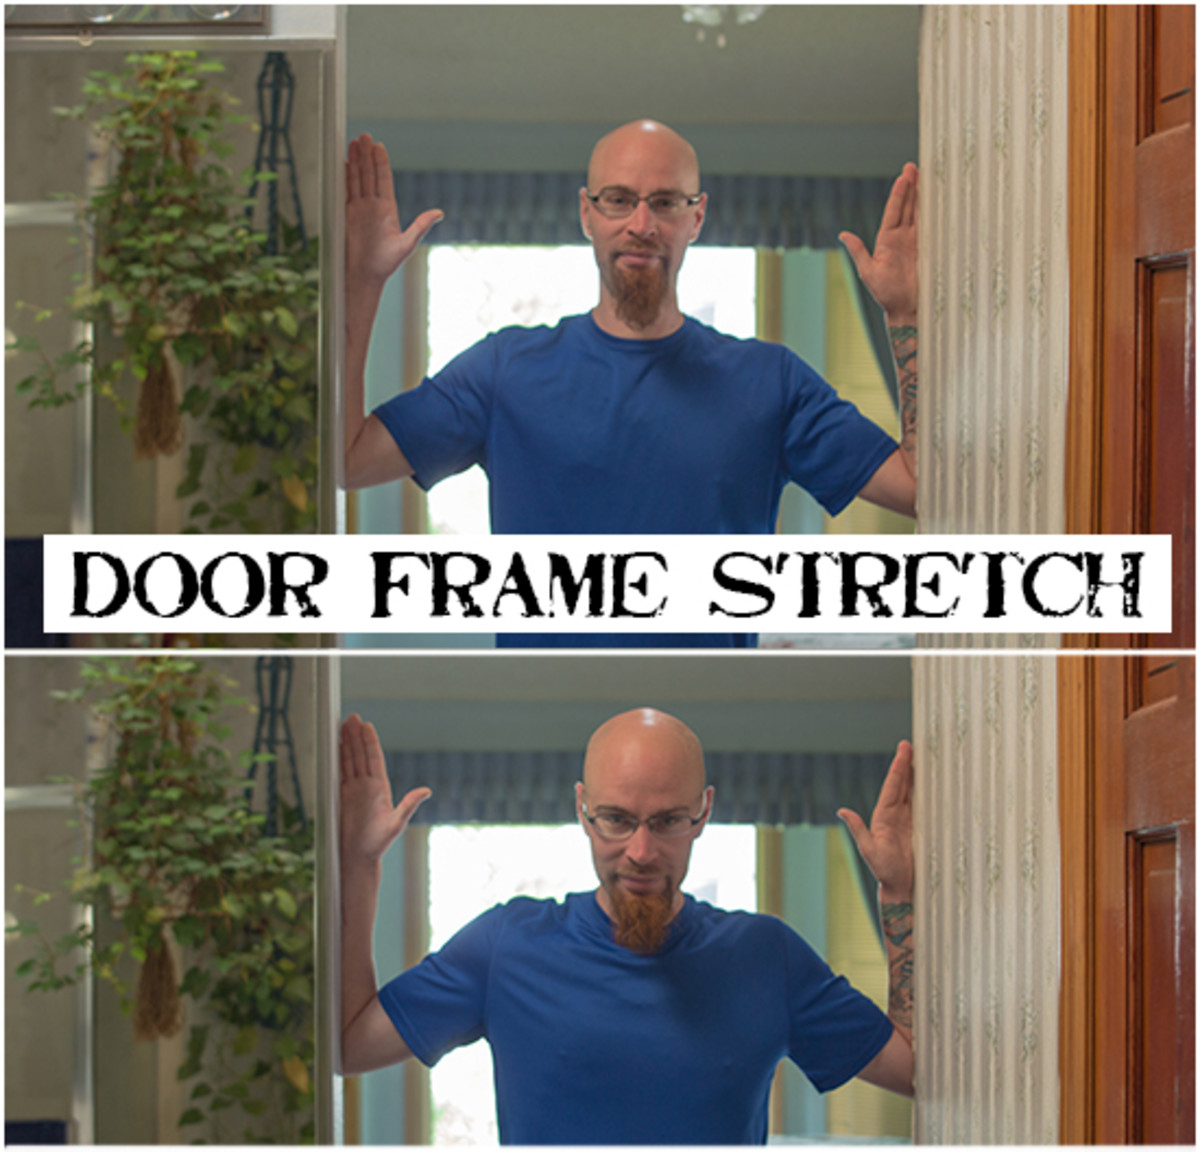 For this shoulder stretch, vertically place your forearms on the door frame and lean forward.